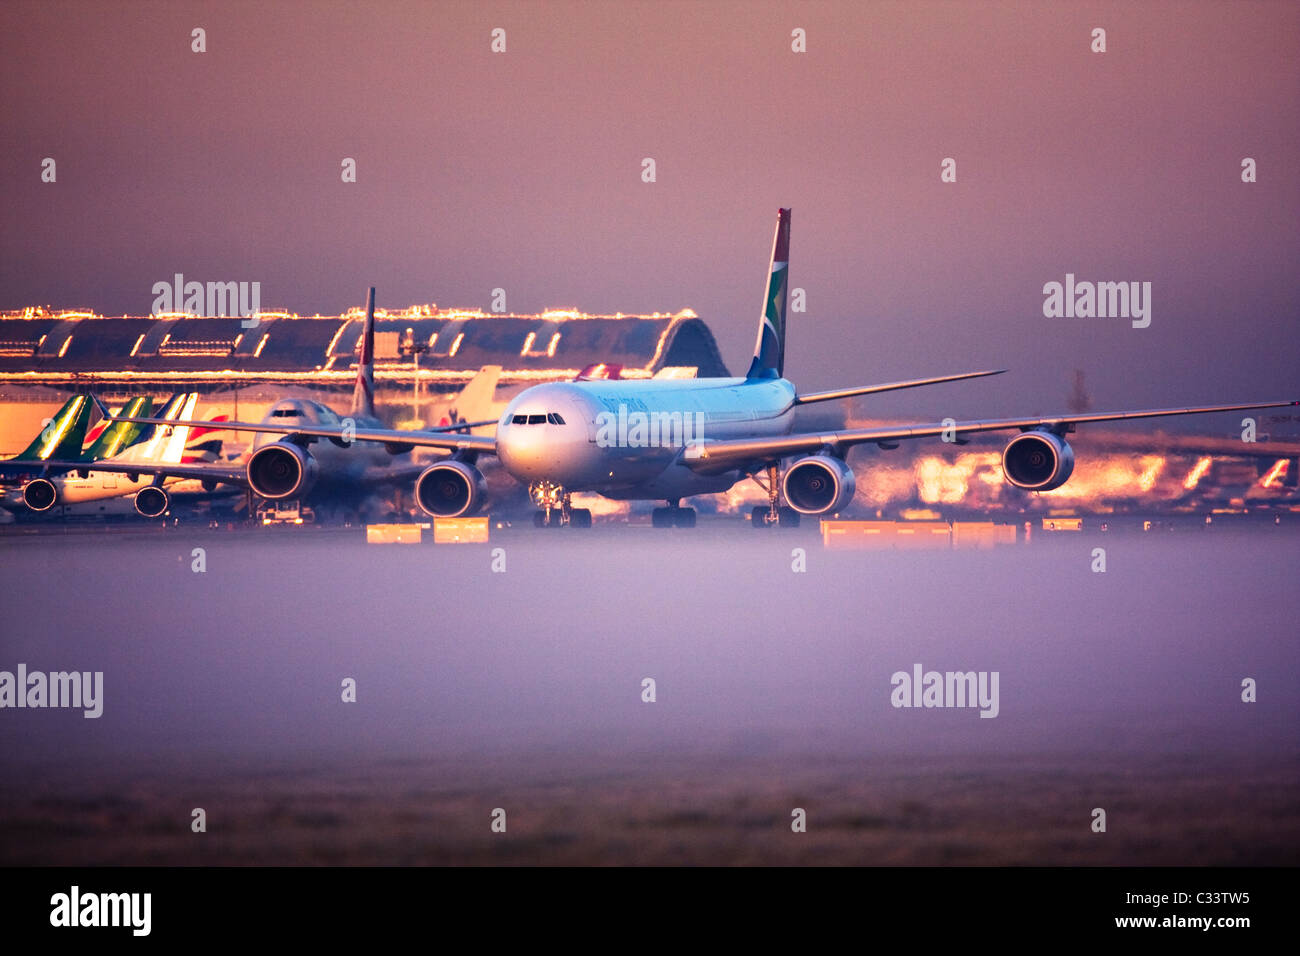 South African Airways Airbus A340-600 at London Heathrow Airport, UK Stock Photo